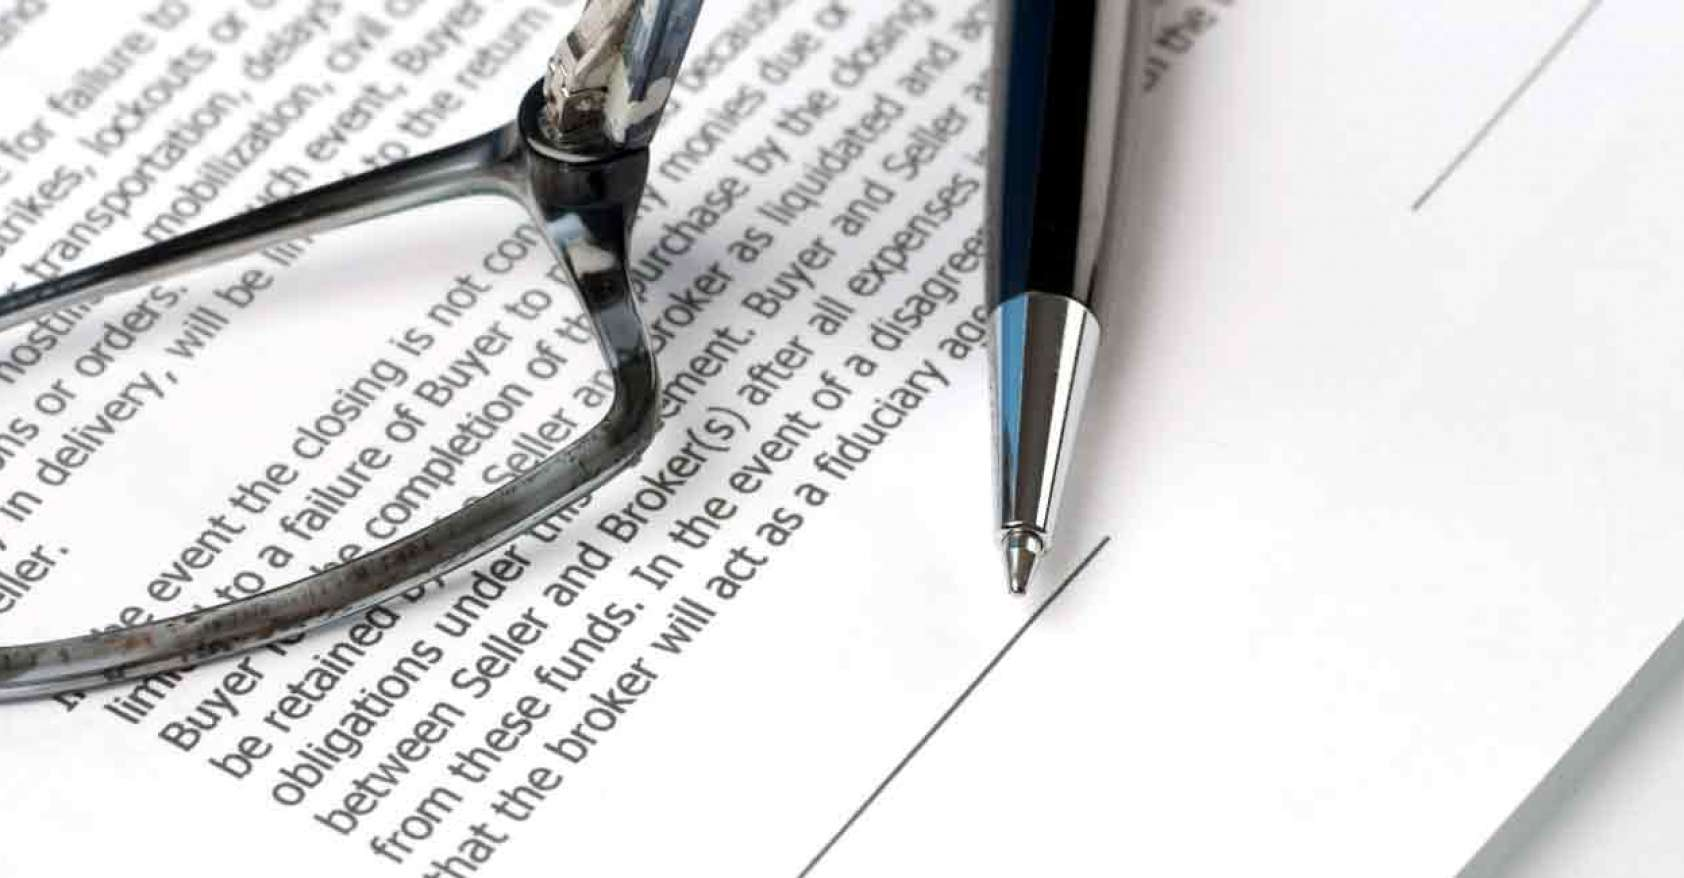 a contract with a pair of glasses and a pen on top for the topic of contracting F&B